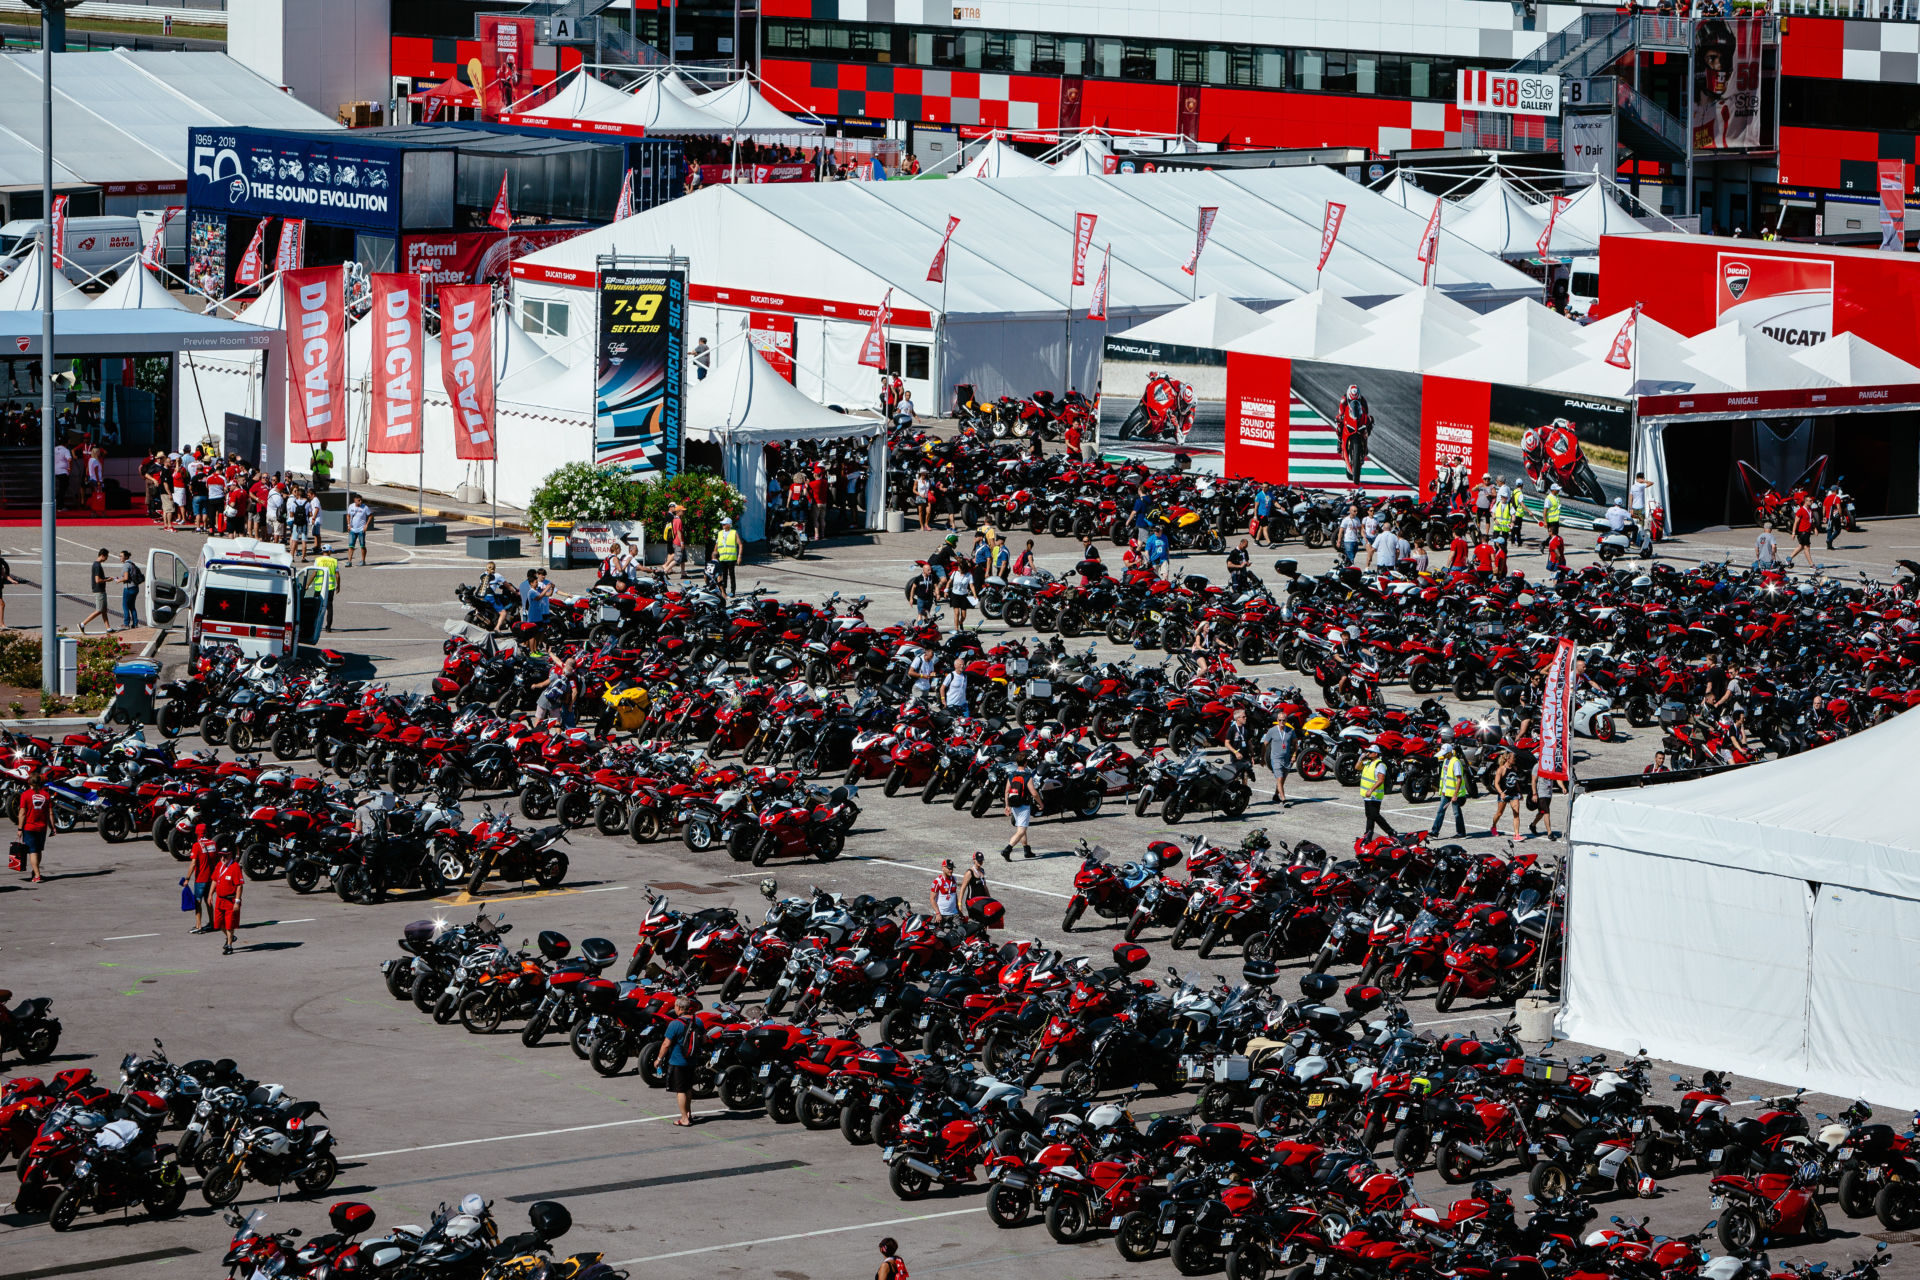 World Ducati Week will be held at Misano World Circuit Marco Simoncelli July 17-19, 2020.